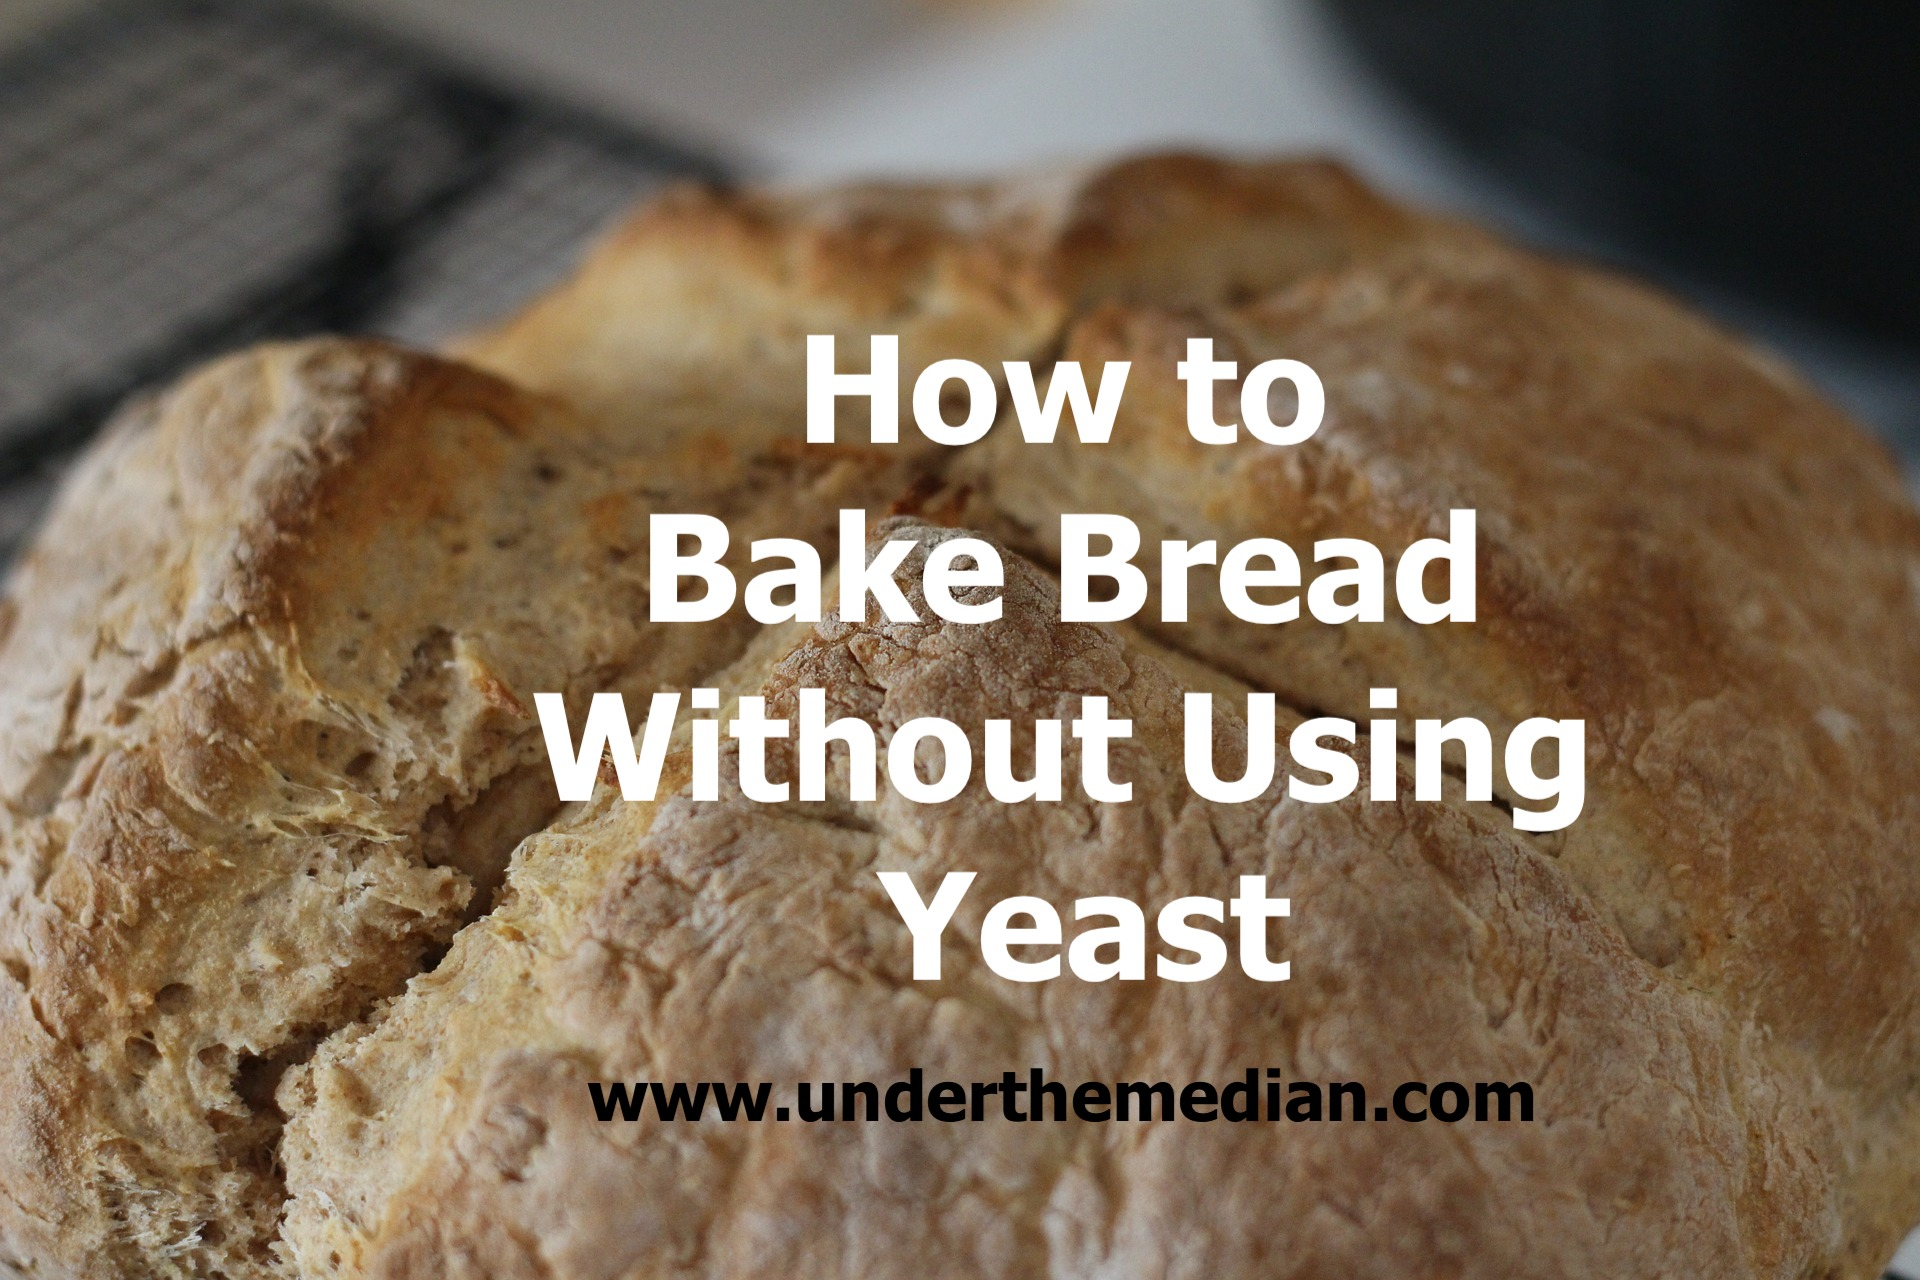 How to Bake Bread Without Using Yeast